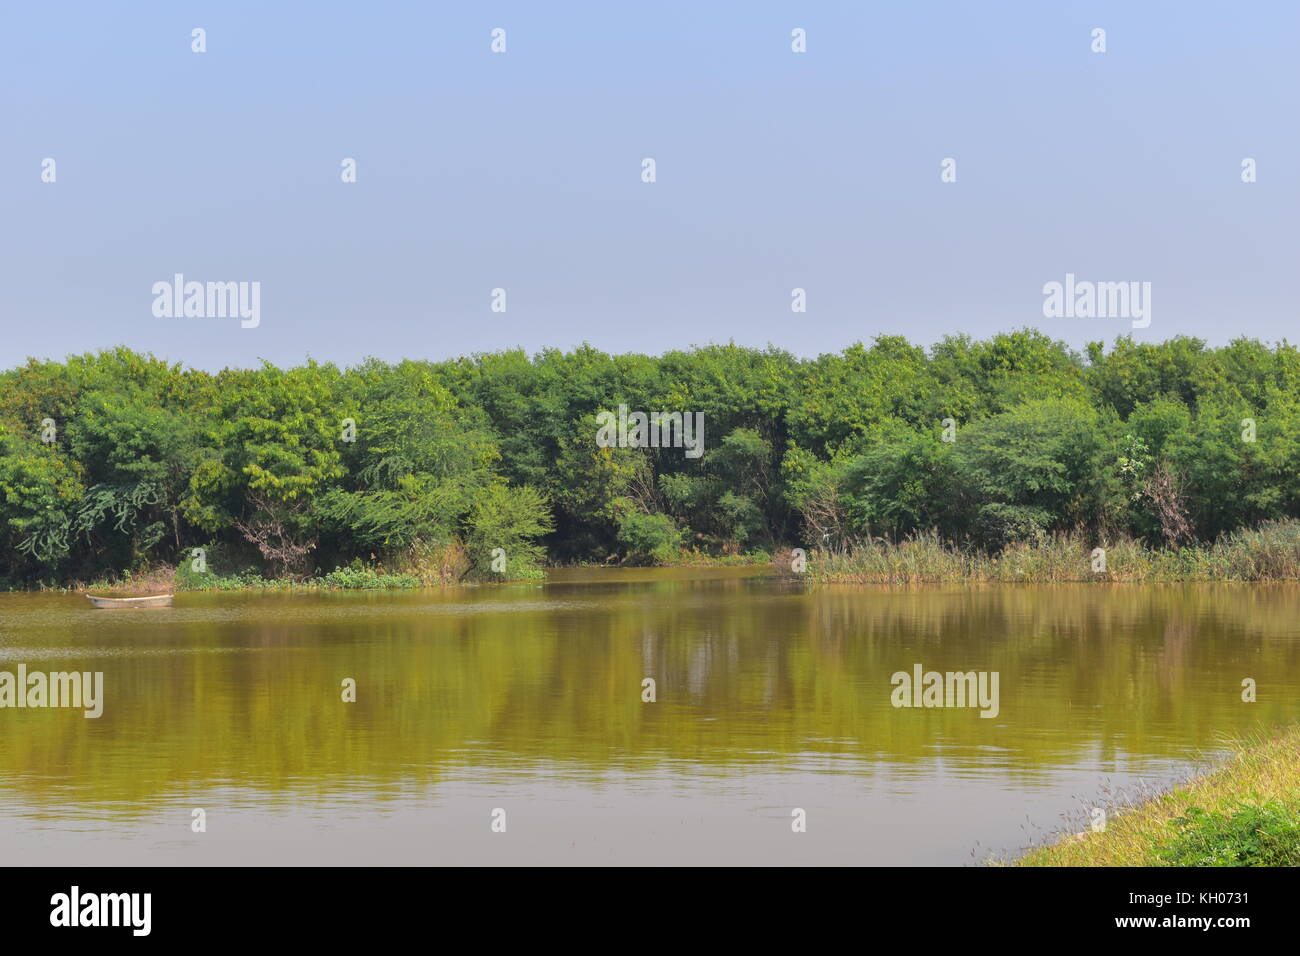 A view of regulator end of Sukhna Lake, Chandigarh, India. Stock Photo